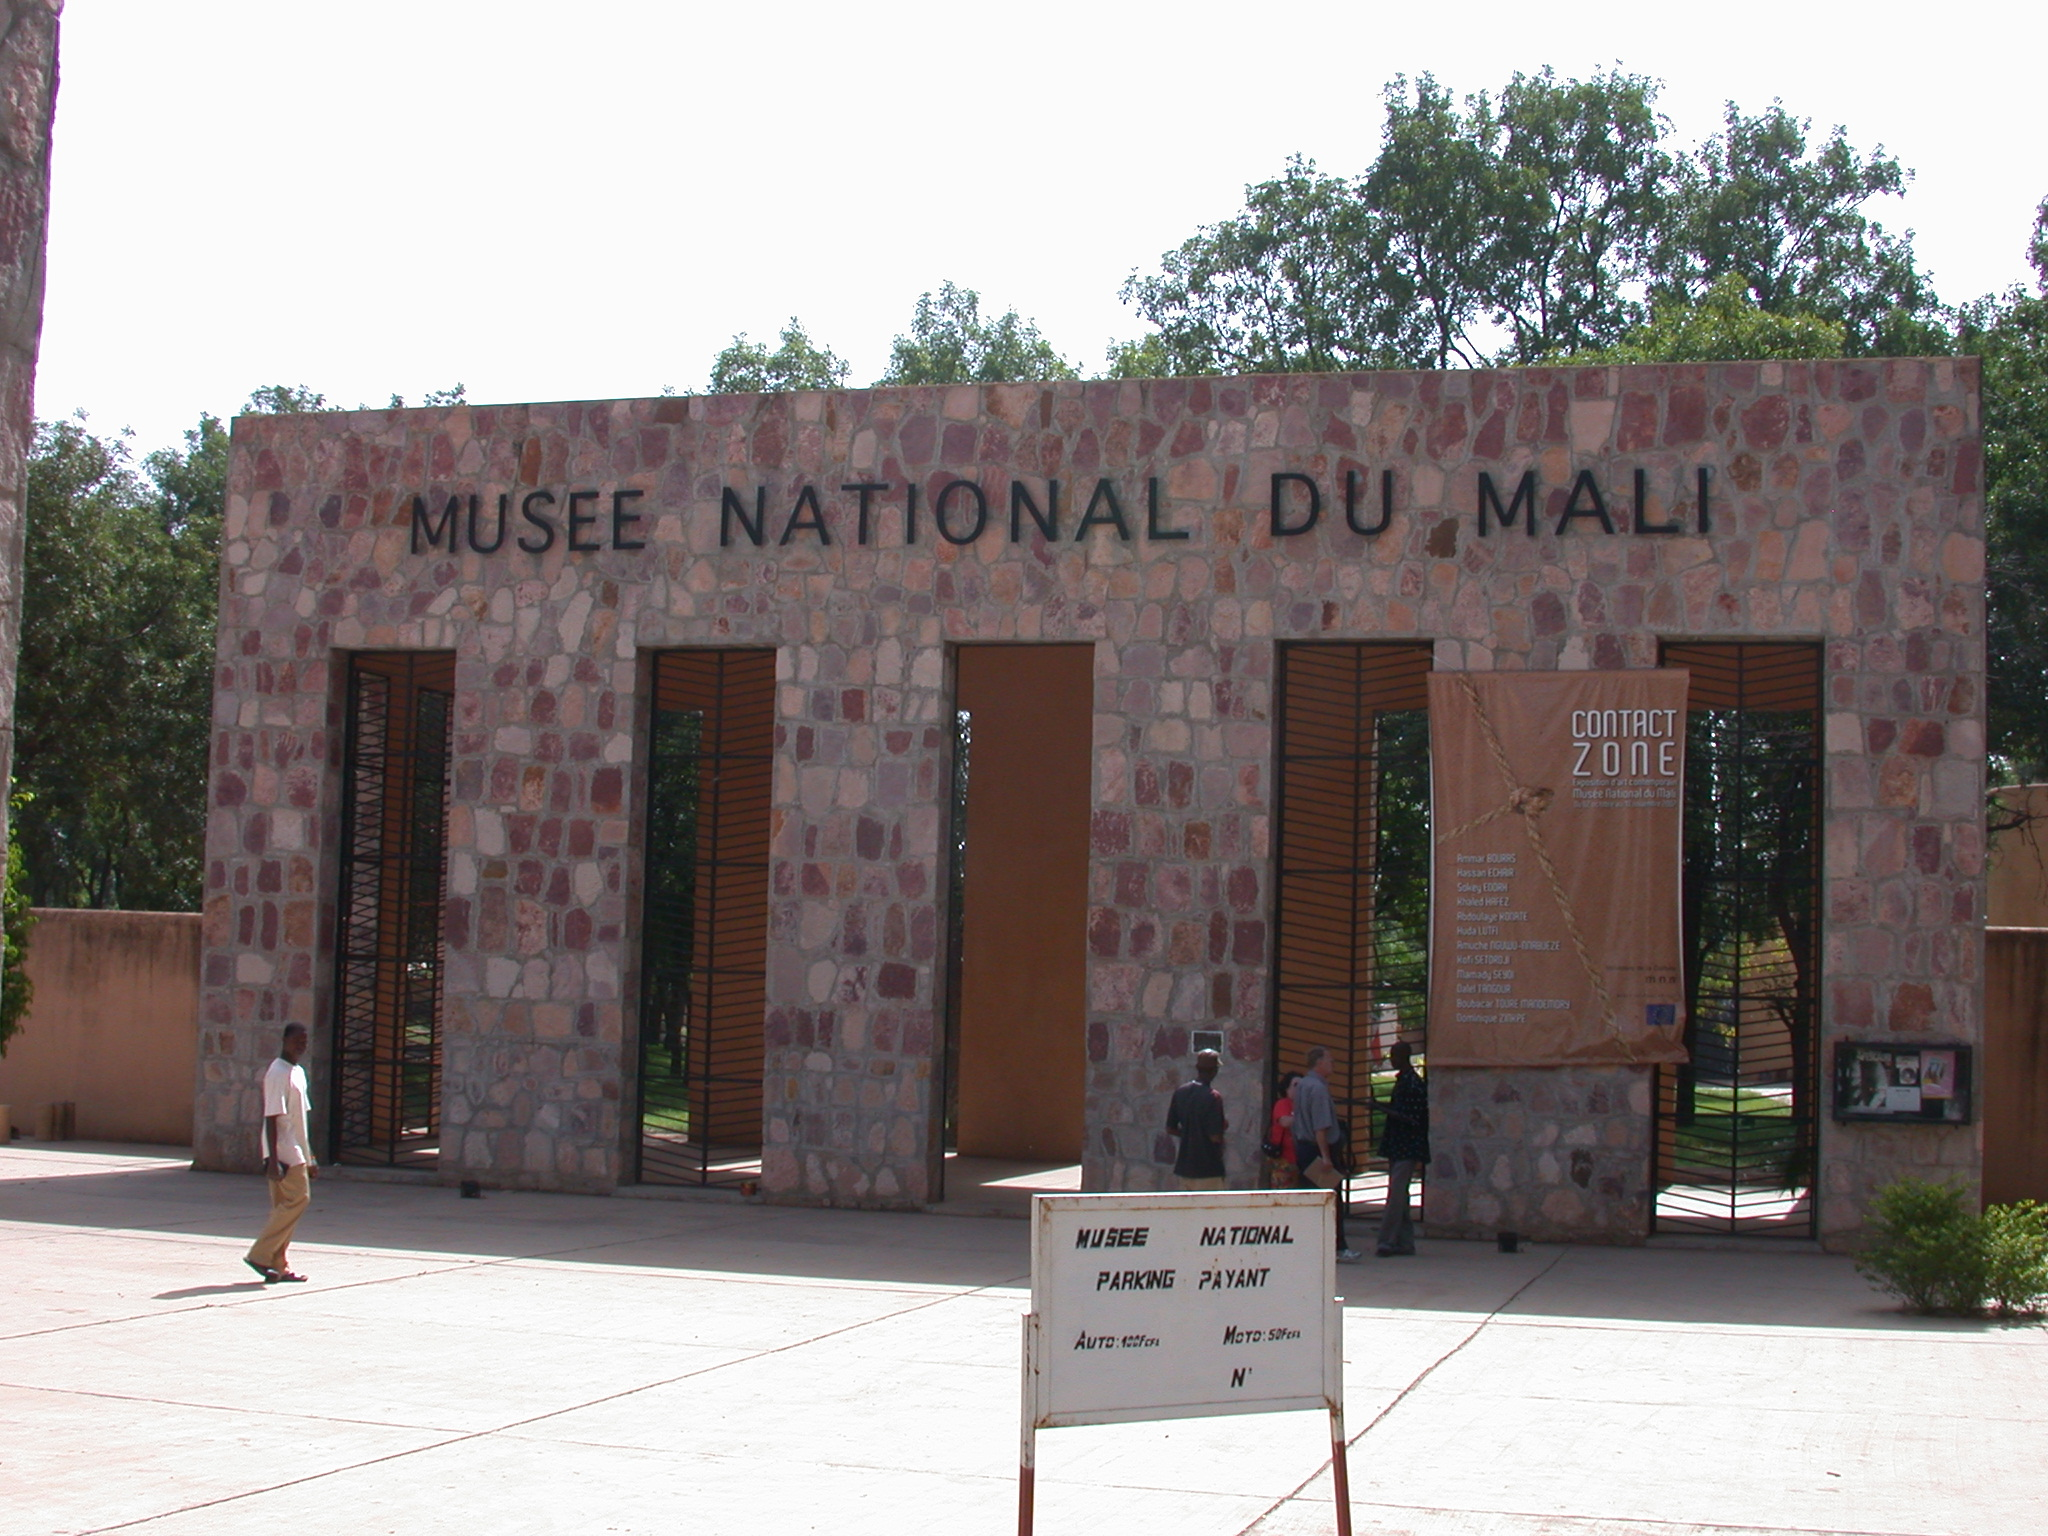 Entrance of Musee Nationale du Mali